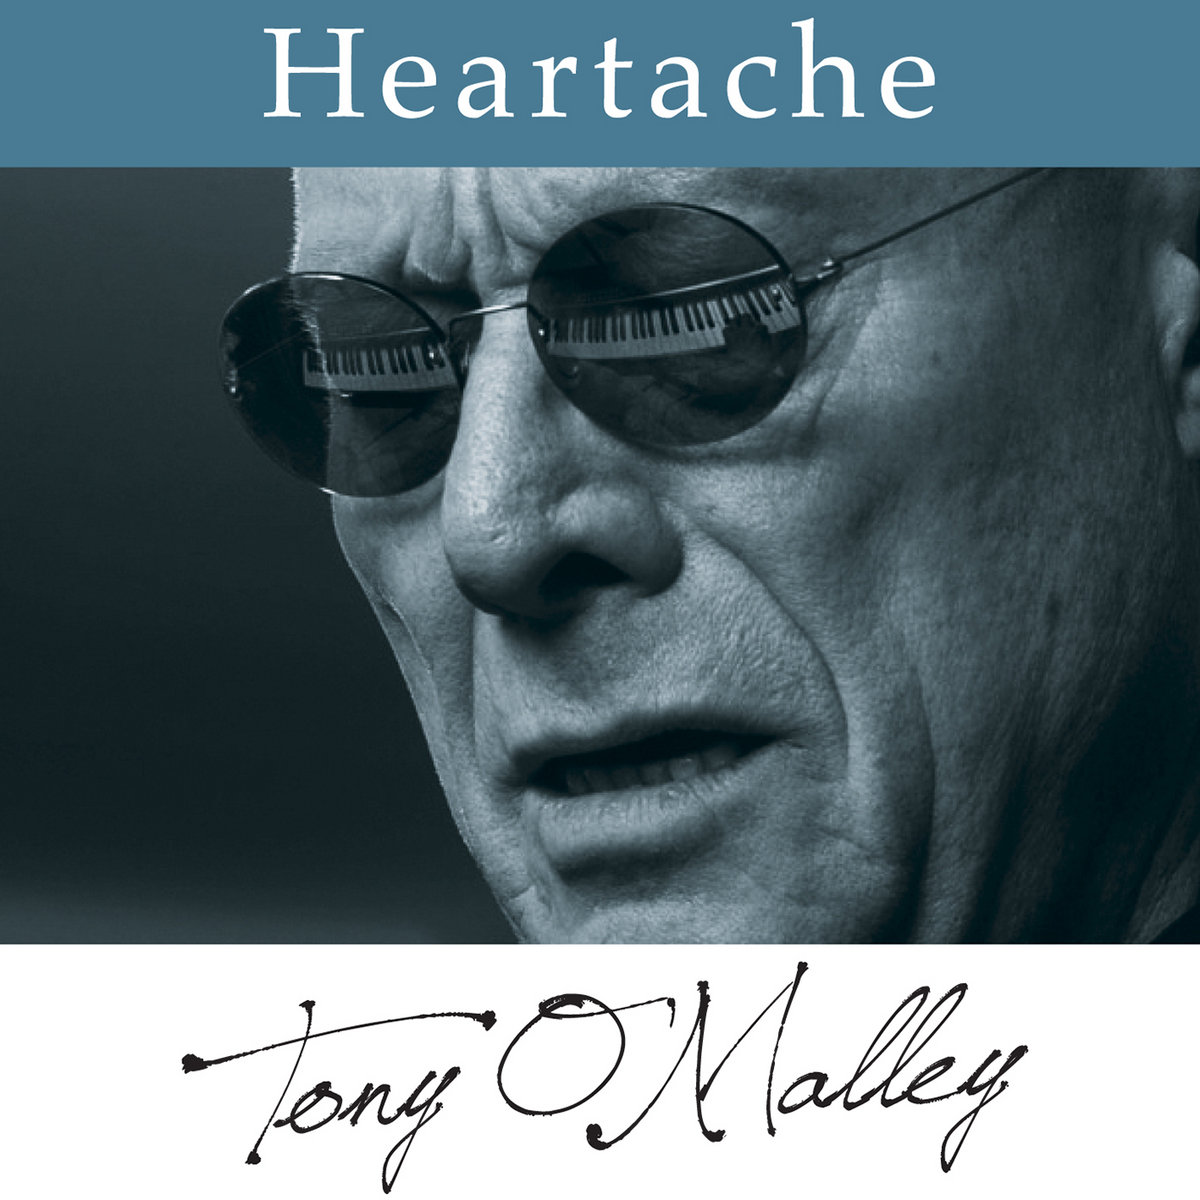 HEARTACHE by Tony O'Malley